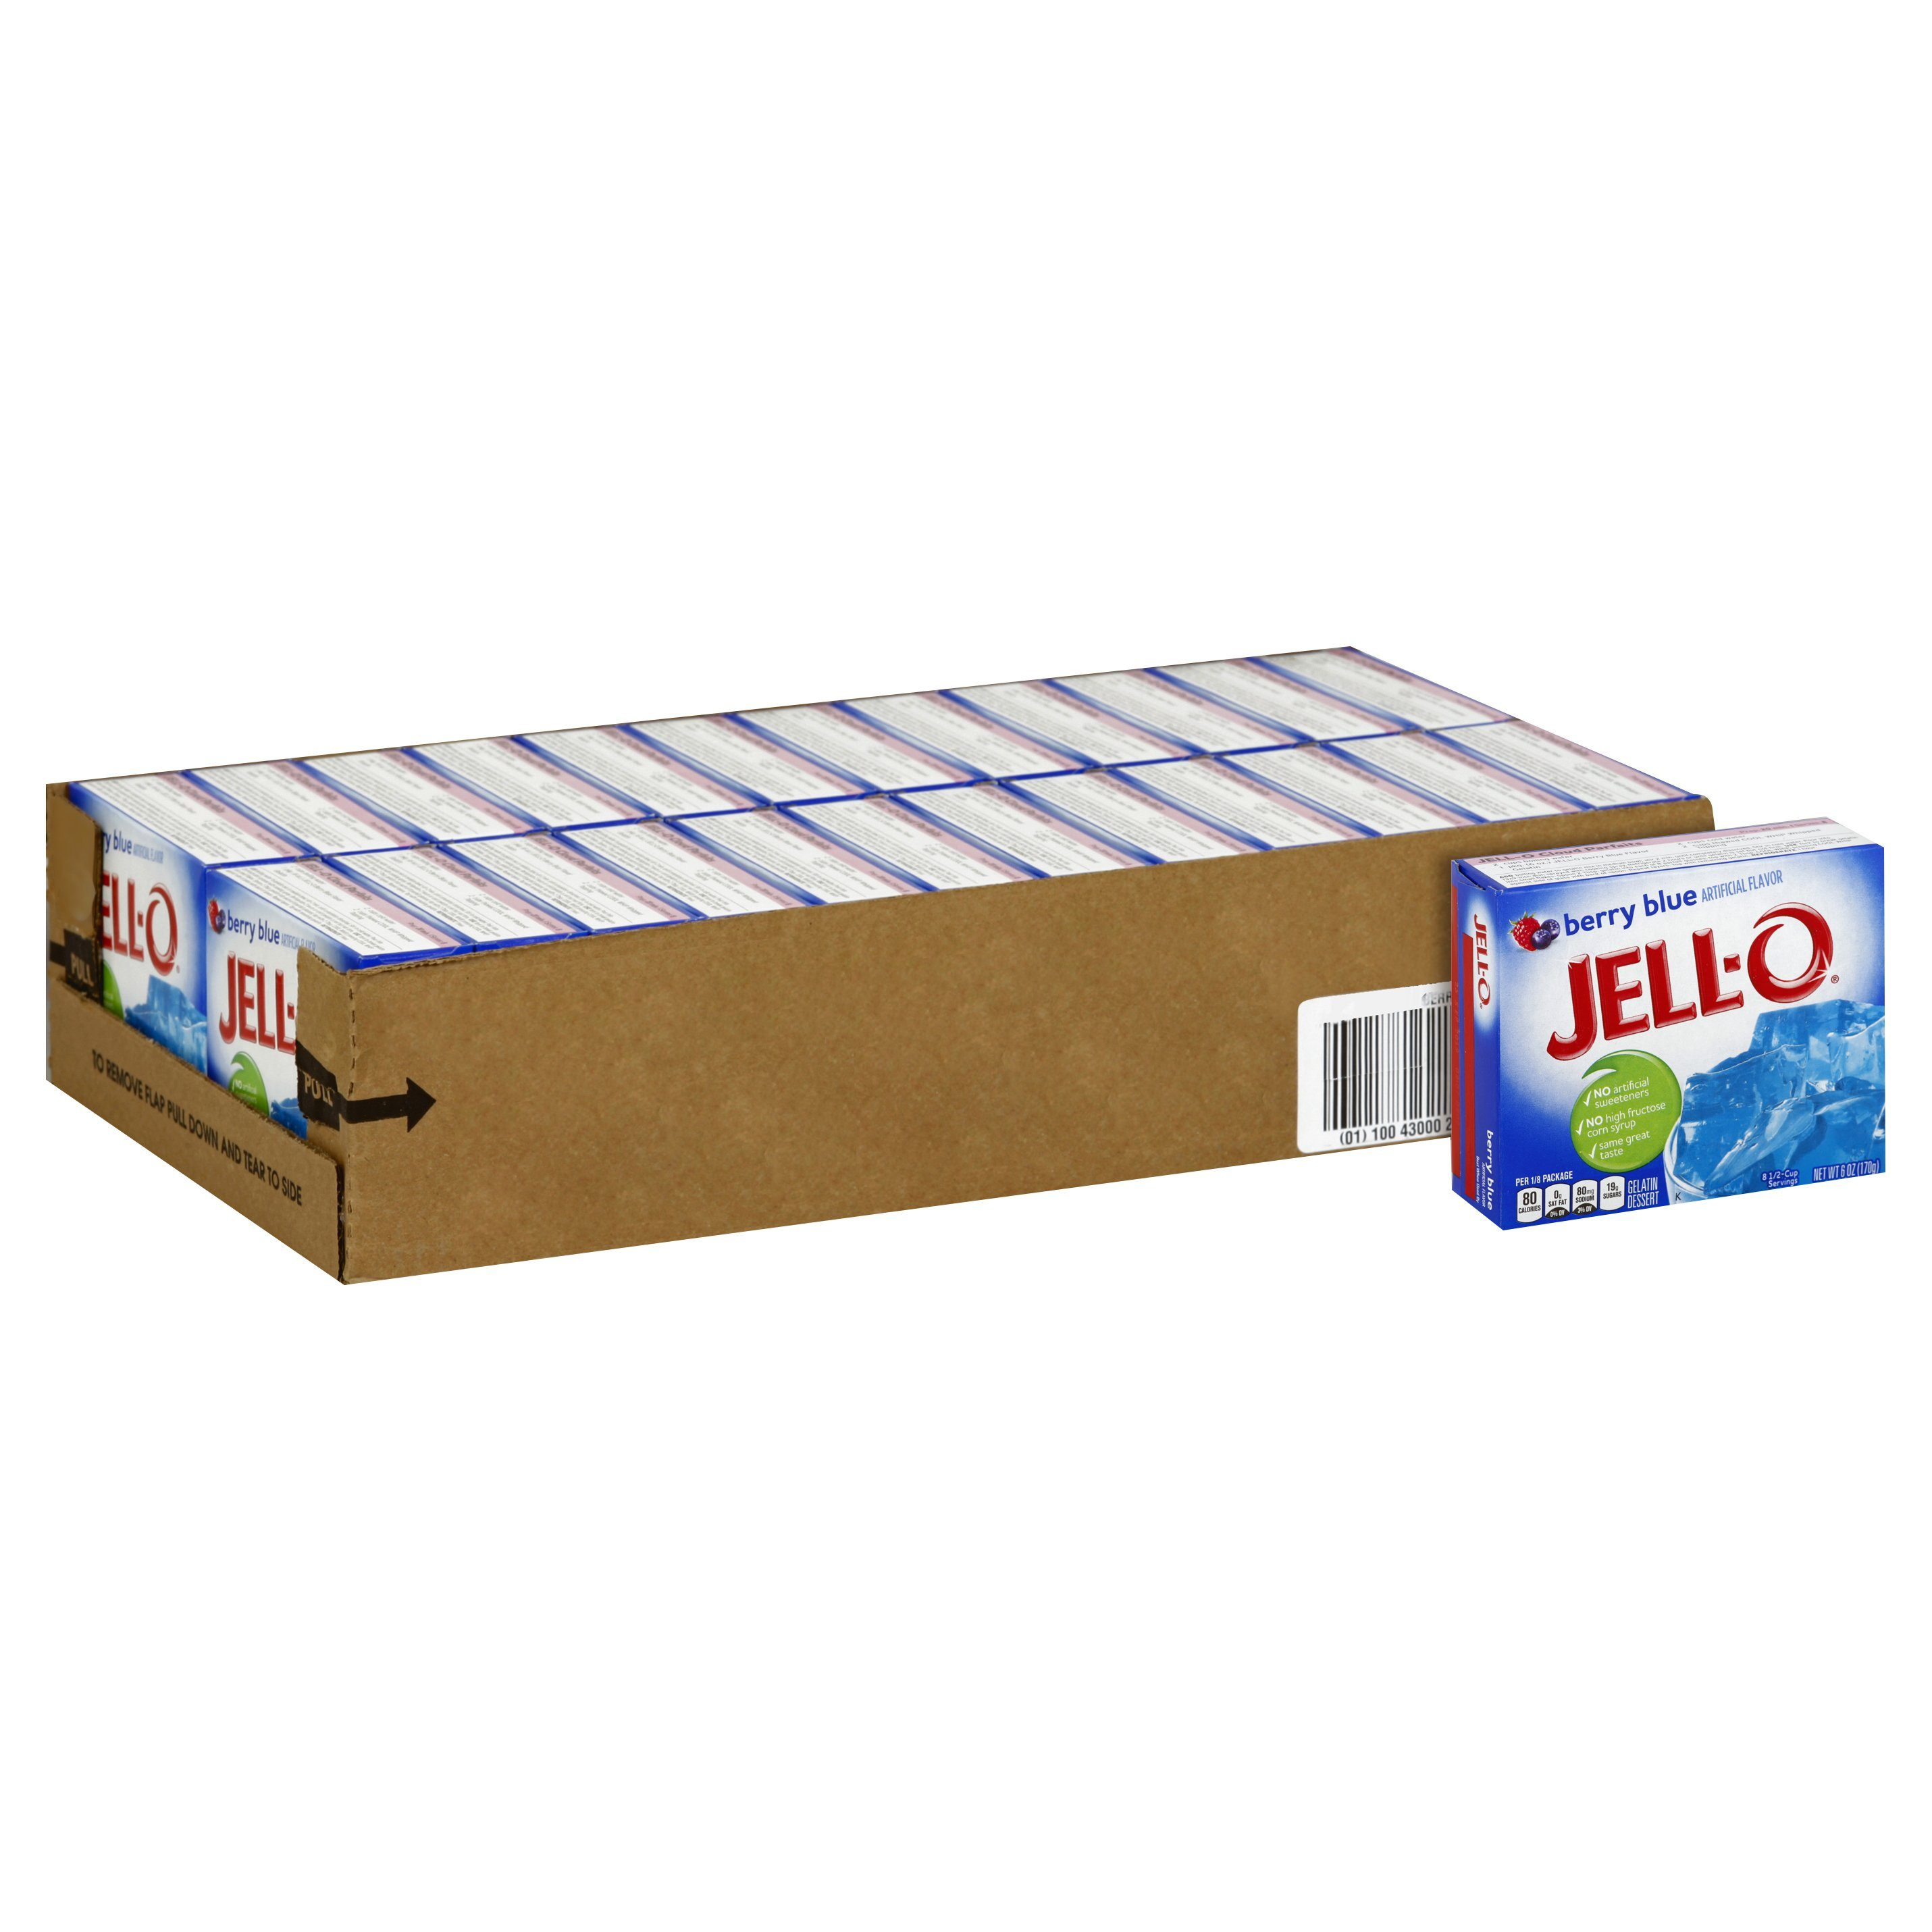 Jell-O Gelatin Mix Jell-O Berry Blue 6 Oz-24 Count